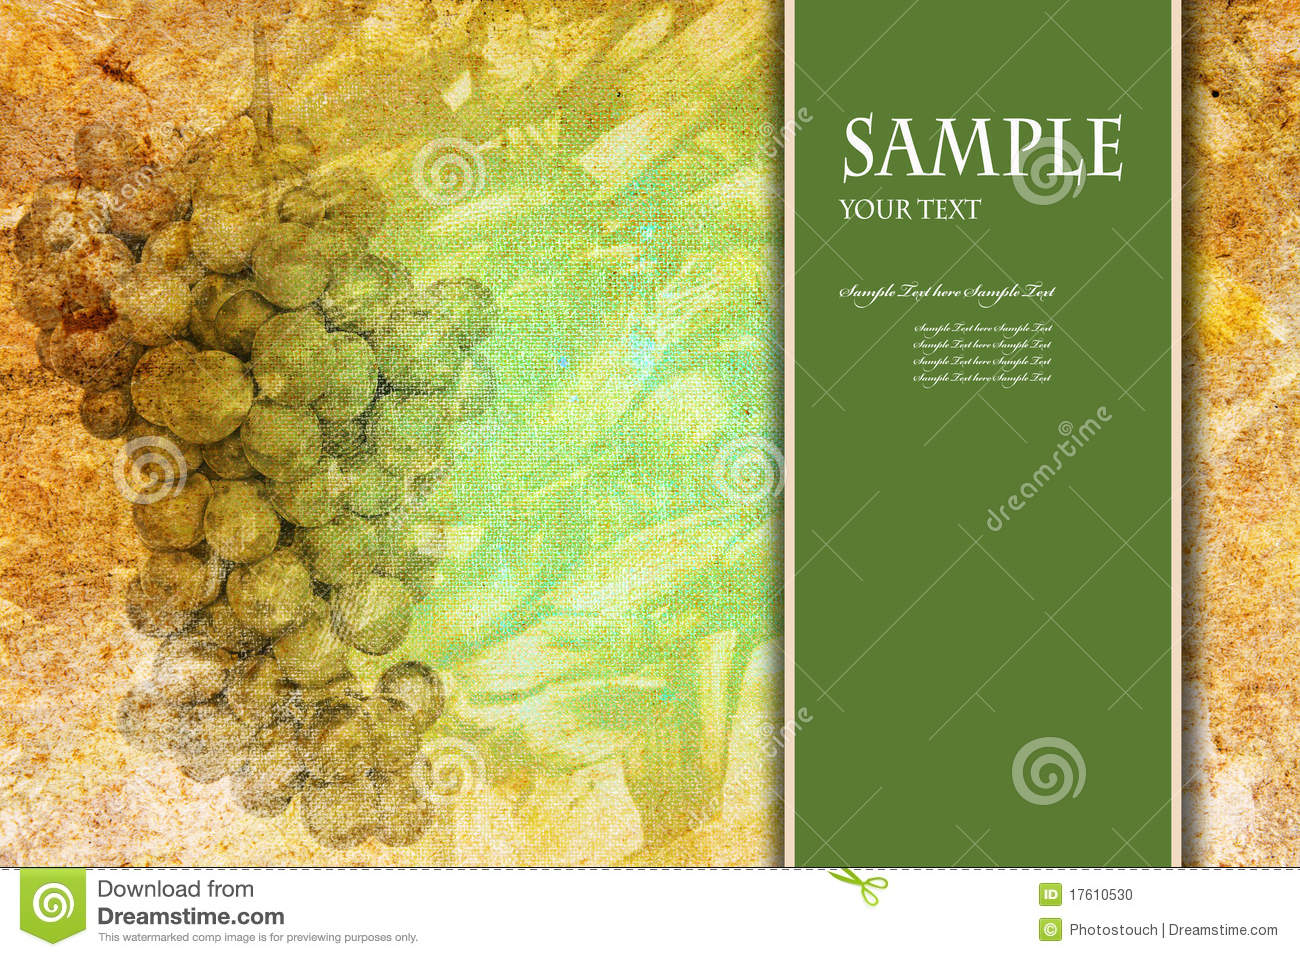 Abstract Book Cover Background ~ Abstract background for card or book cover stock